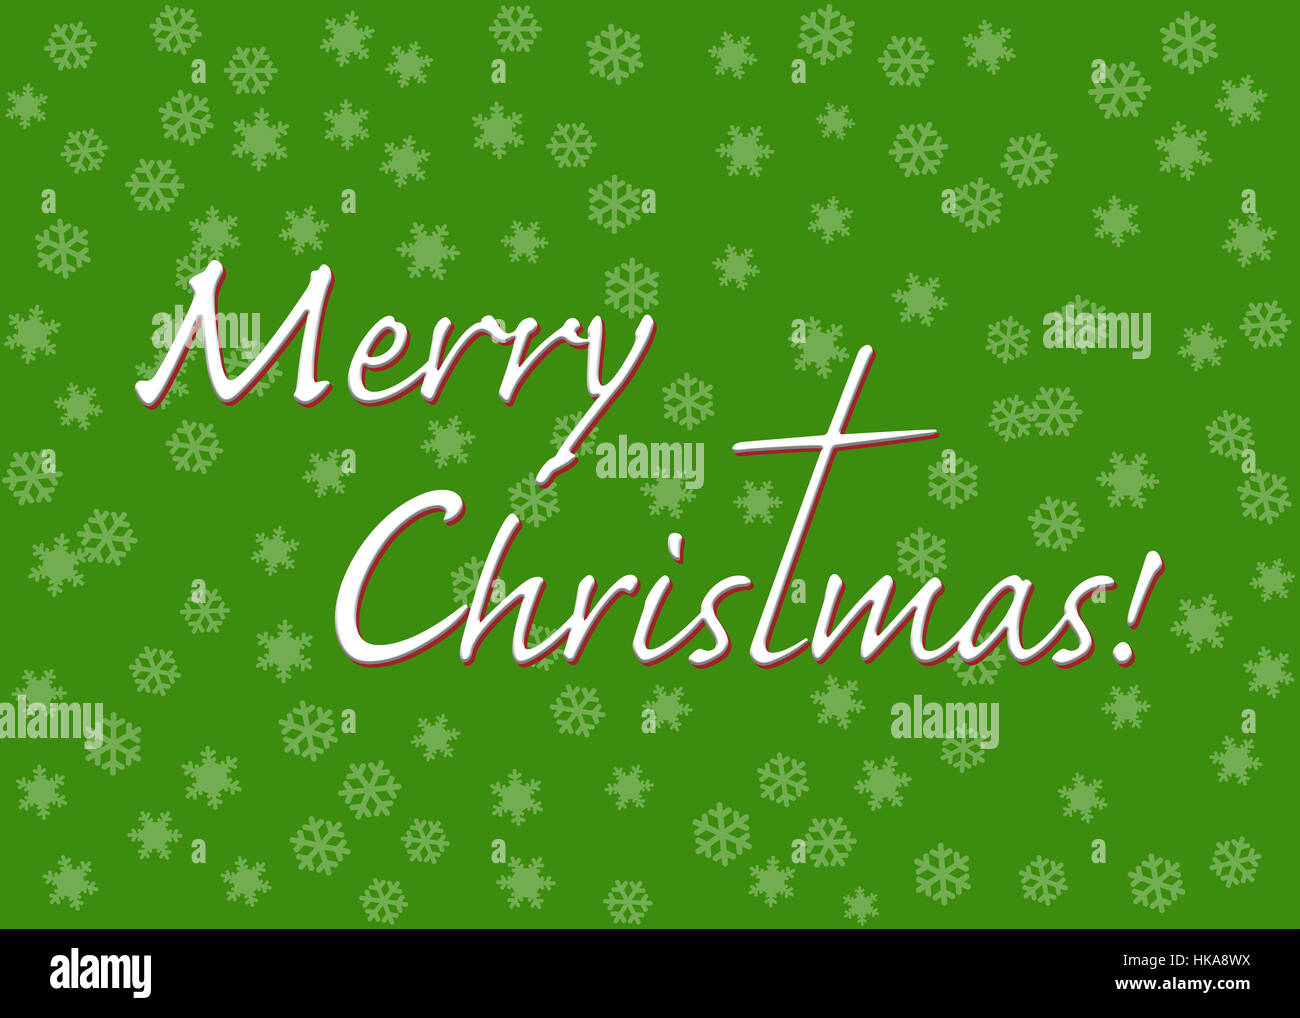 Merry Christmas Letter T.Merry Christmas Text With Letter T Stretched Out To A Cross